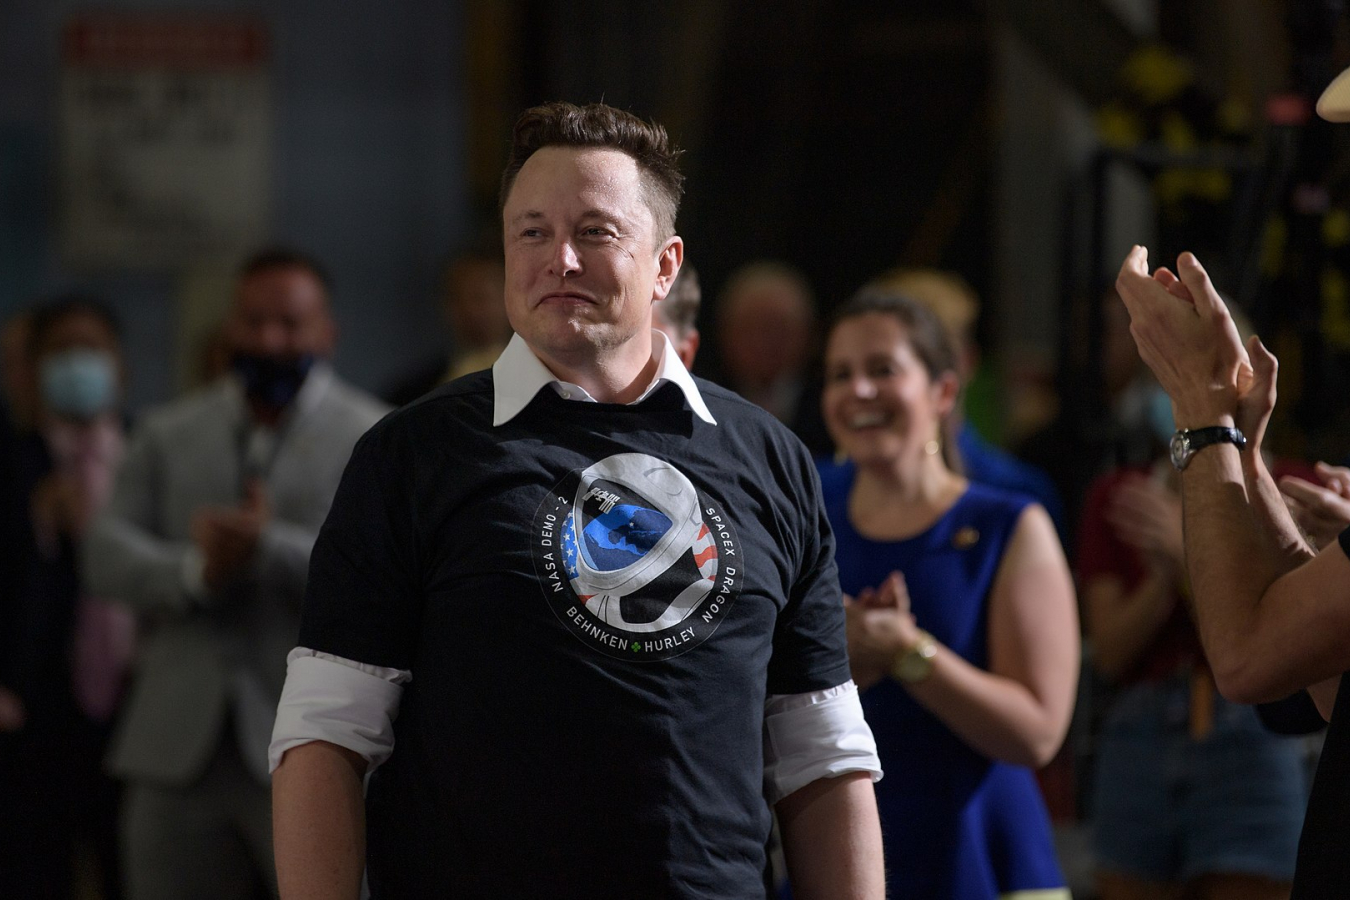 Elon Musk, SpaceX Chief Engineer, and the SpaceX team 30 May 2020